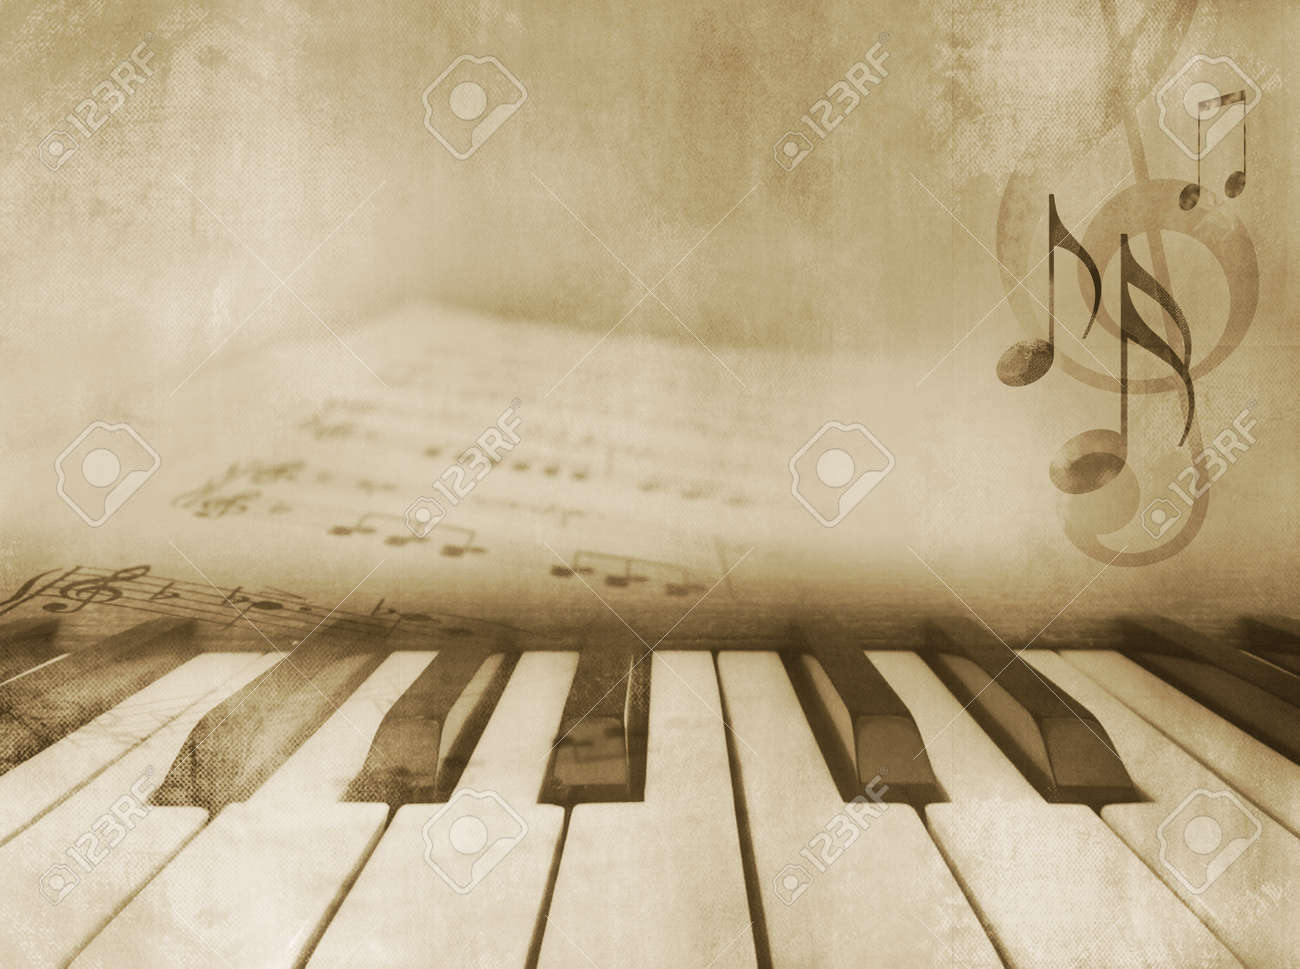 Grunge Musical Background Piano Keys And Sheet Music Vintage